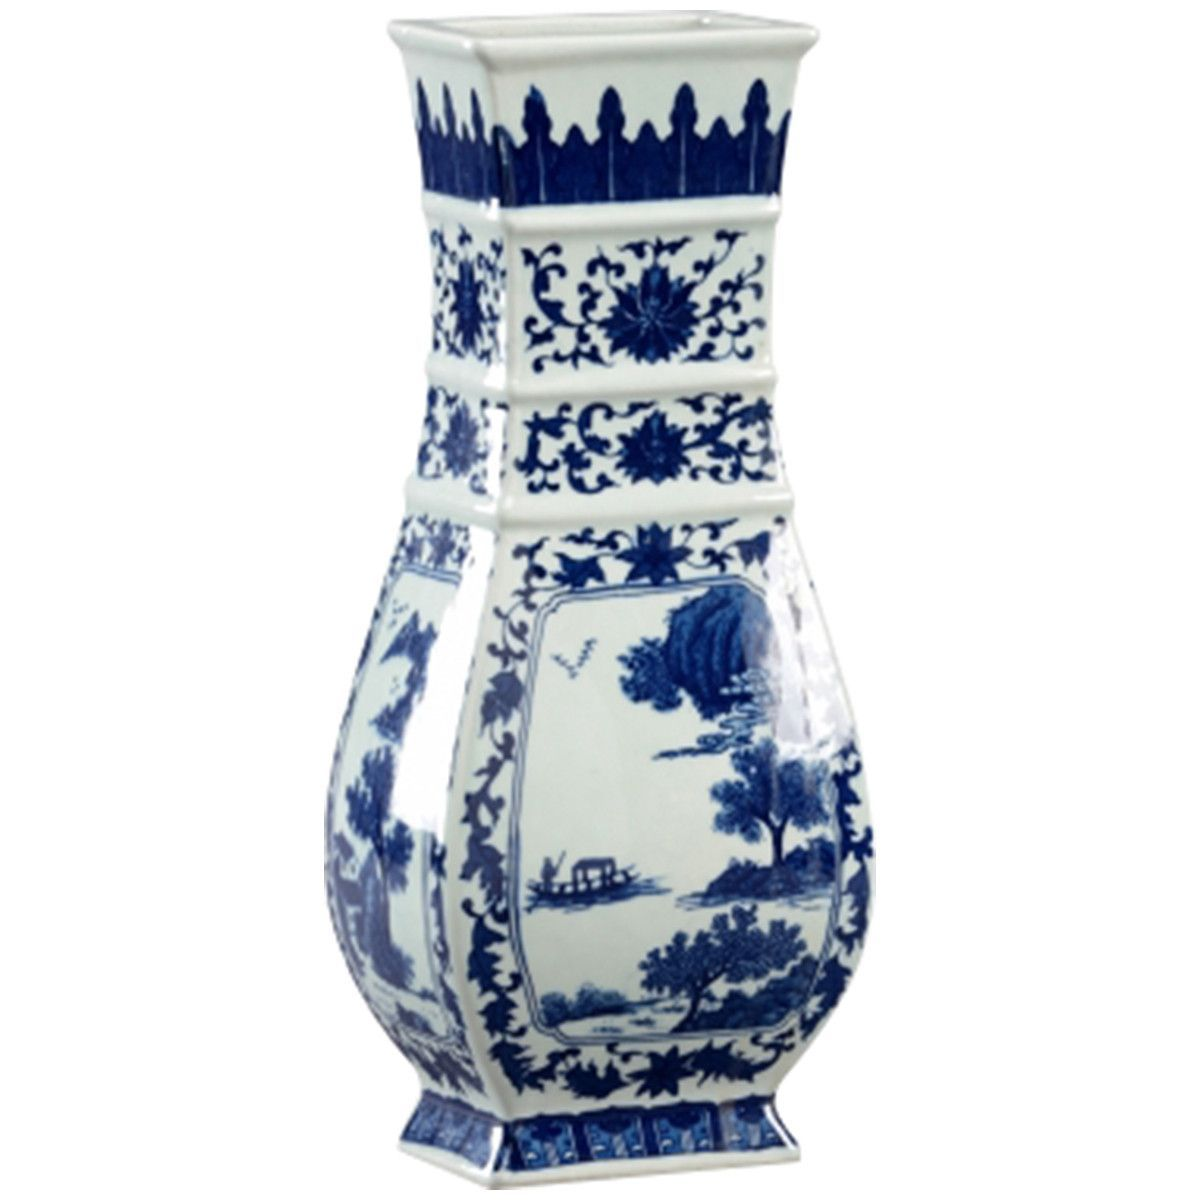 Chelsea House Stepped Blue and White Porcelain Vase